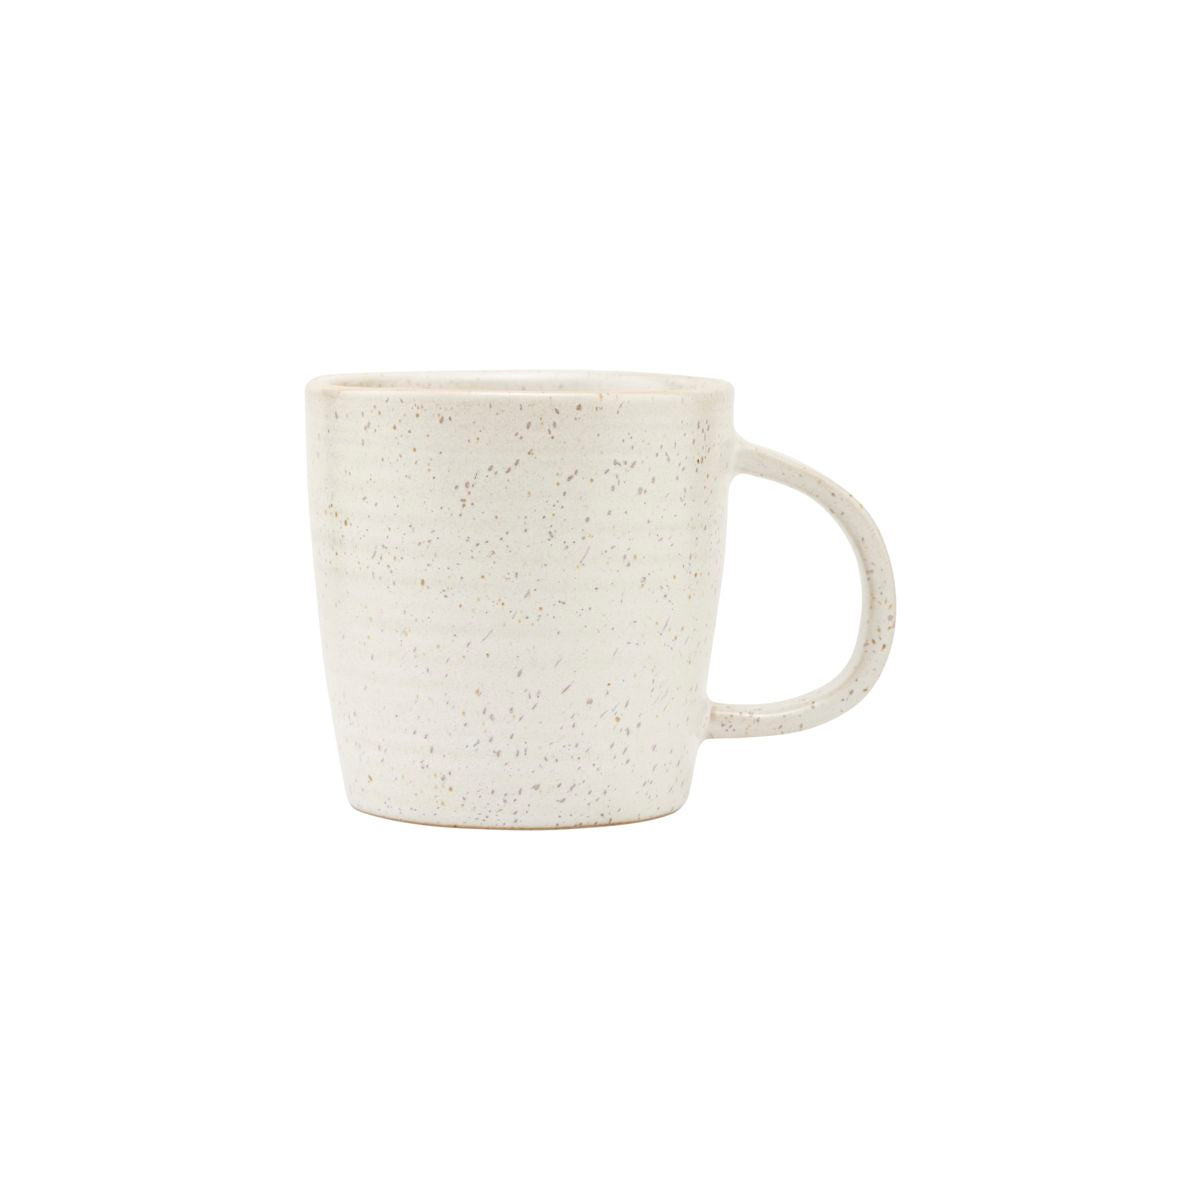 Pion Grey & White Mug By House Doctor